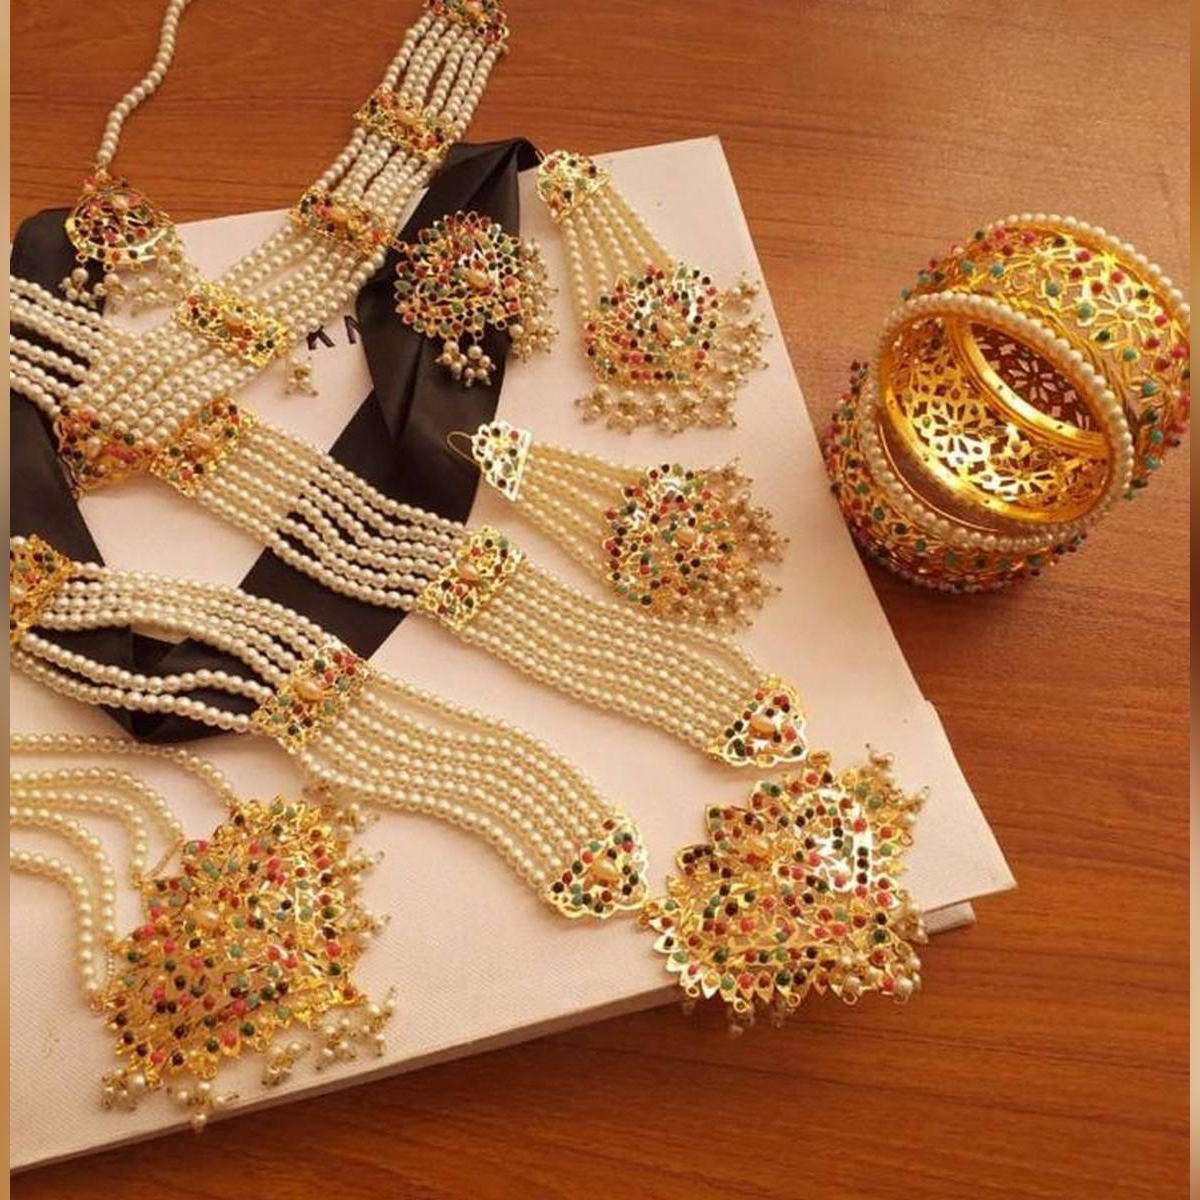 - High quality bridal set with bangles 1 year you can use in party long lasting polish famous design for women